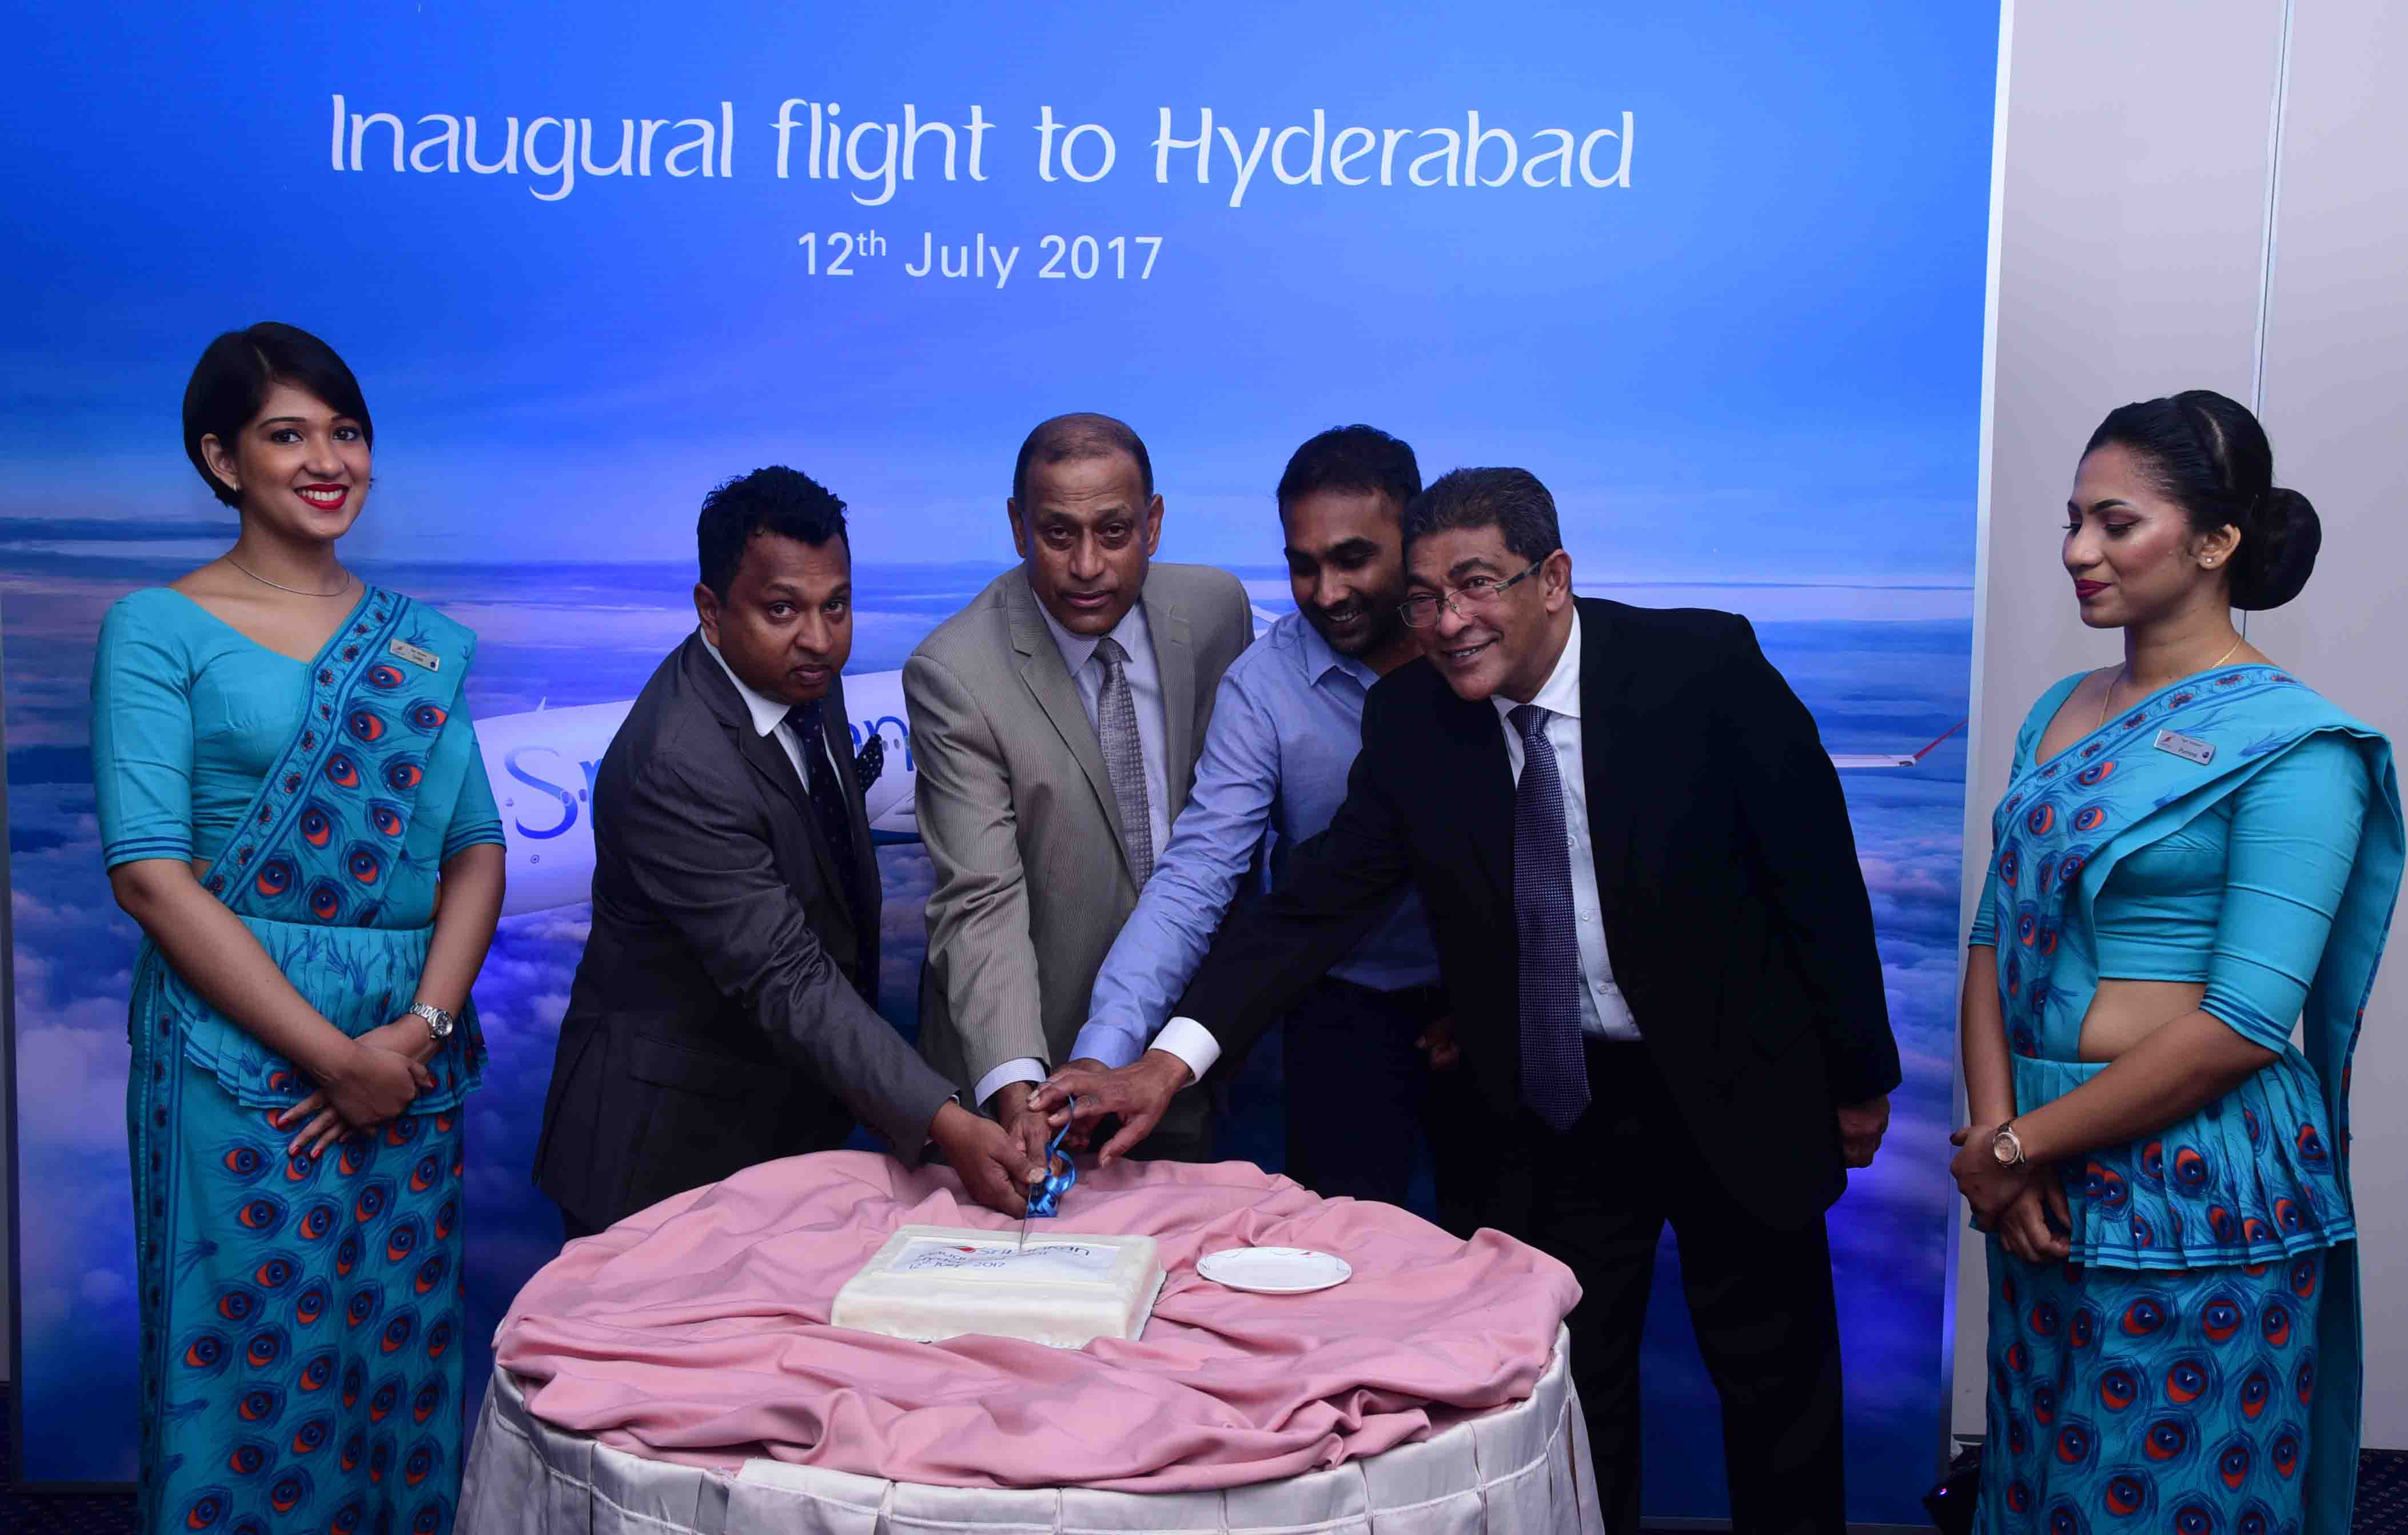 SriLankan Airlines, Director Mr. Harendra K. Balapatabendi together with Chief Commercial Officer Mr. Siva Ramachandran, Brand ambassador of SriLankan and former Sri Lanka Cricket CaptainMr. Mahela Jayewardene and SriLankan Airlines, Consultant Mr. Lal Perera cutting a cake minutes before the inaugural flight to Hyderabad yesterday